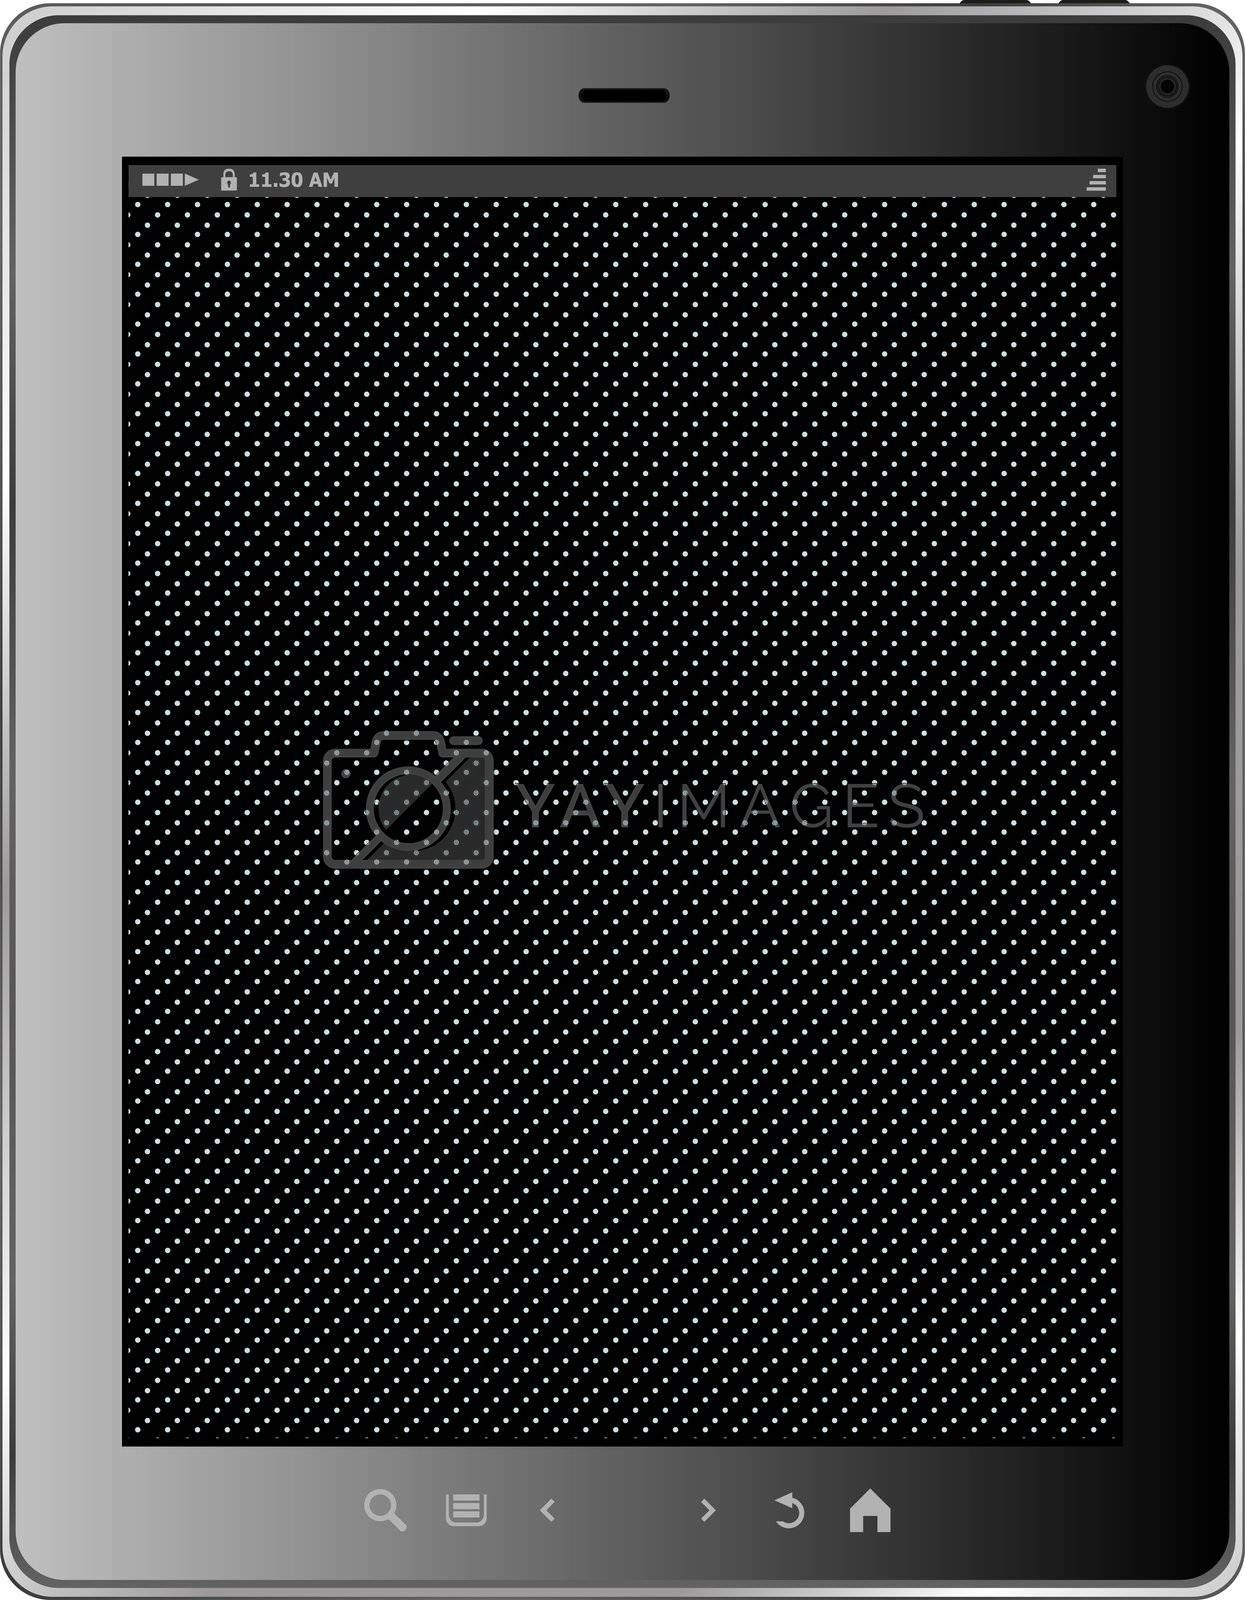 Realistic tablet pc computer with black screen isolated on white background. Vector eps10 illustration